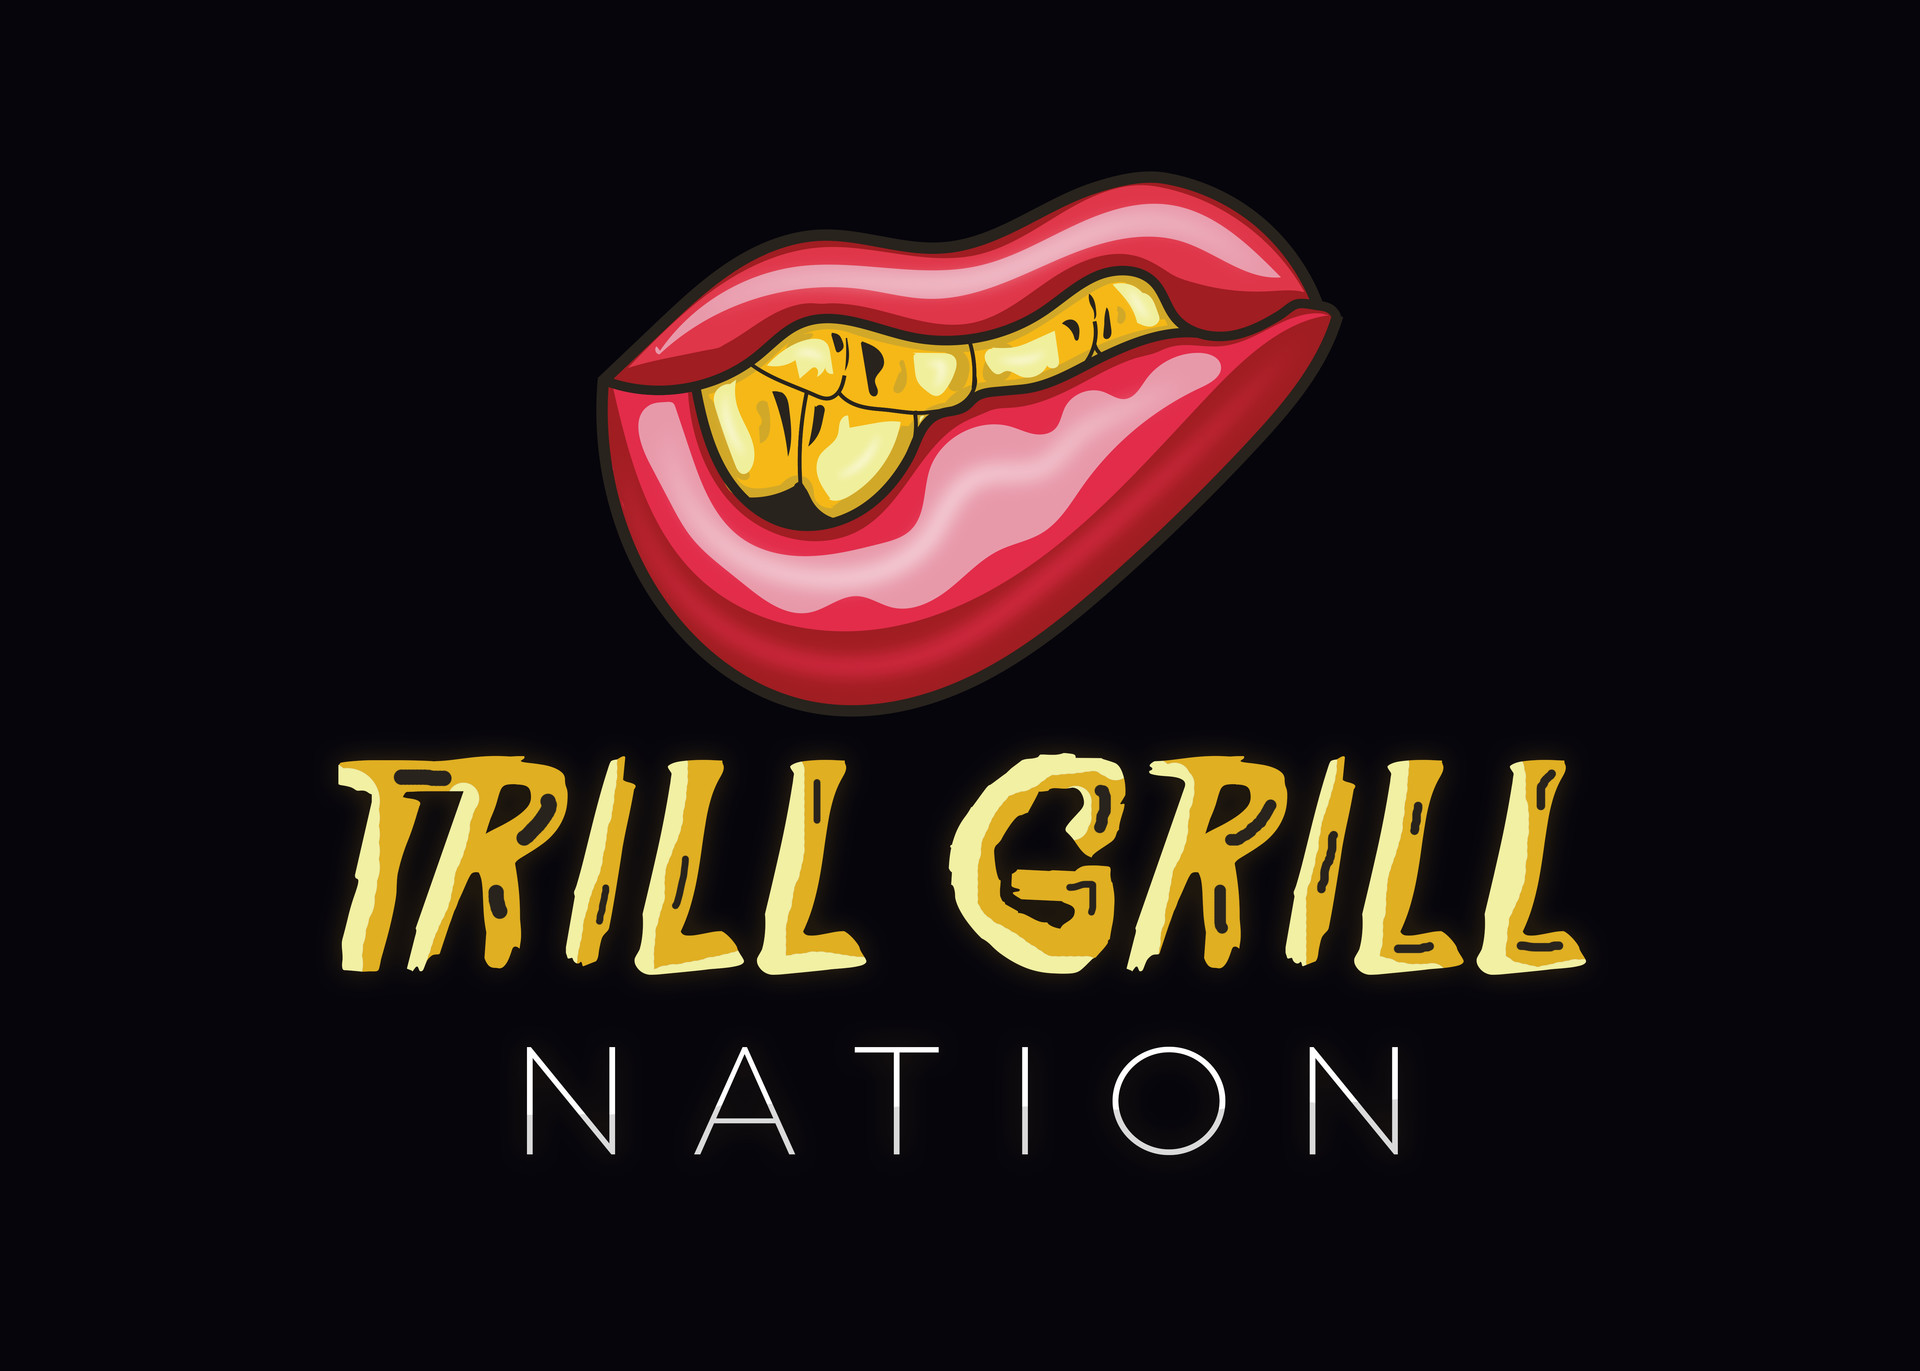 Jerry ubah trill grill nation